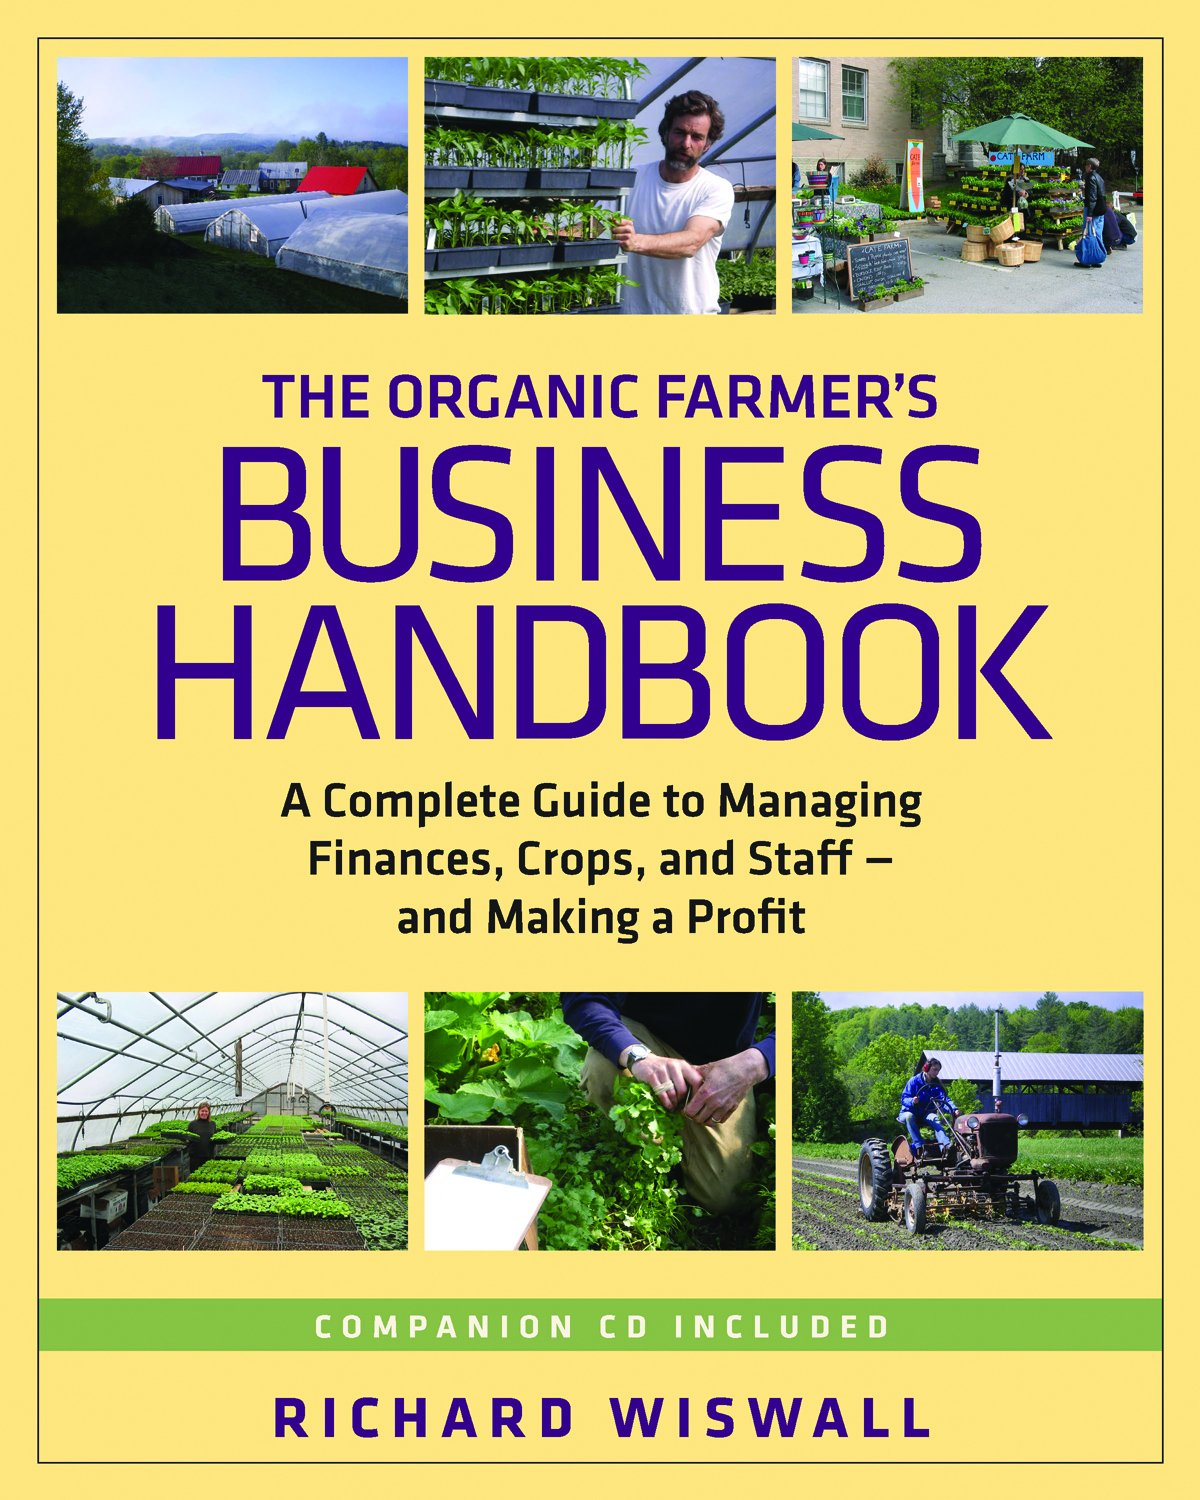 The Organic Farmer's Business Handbook Cover Image